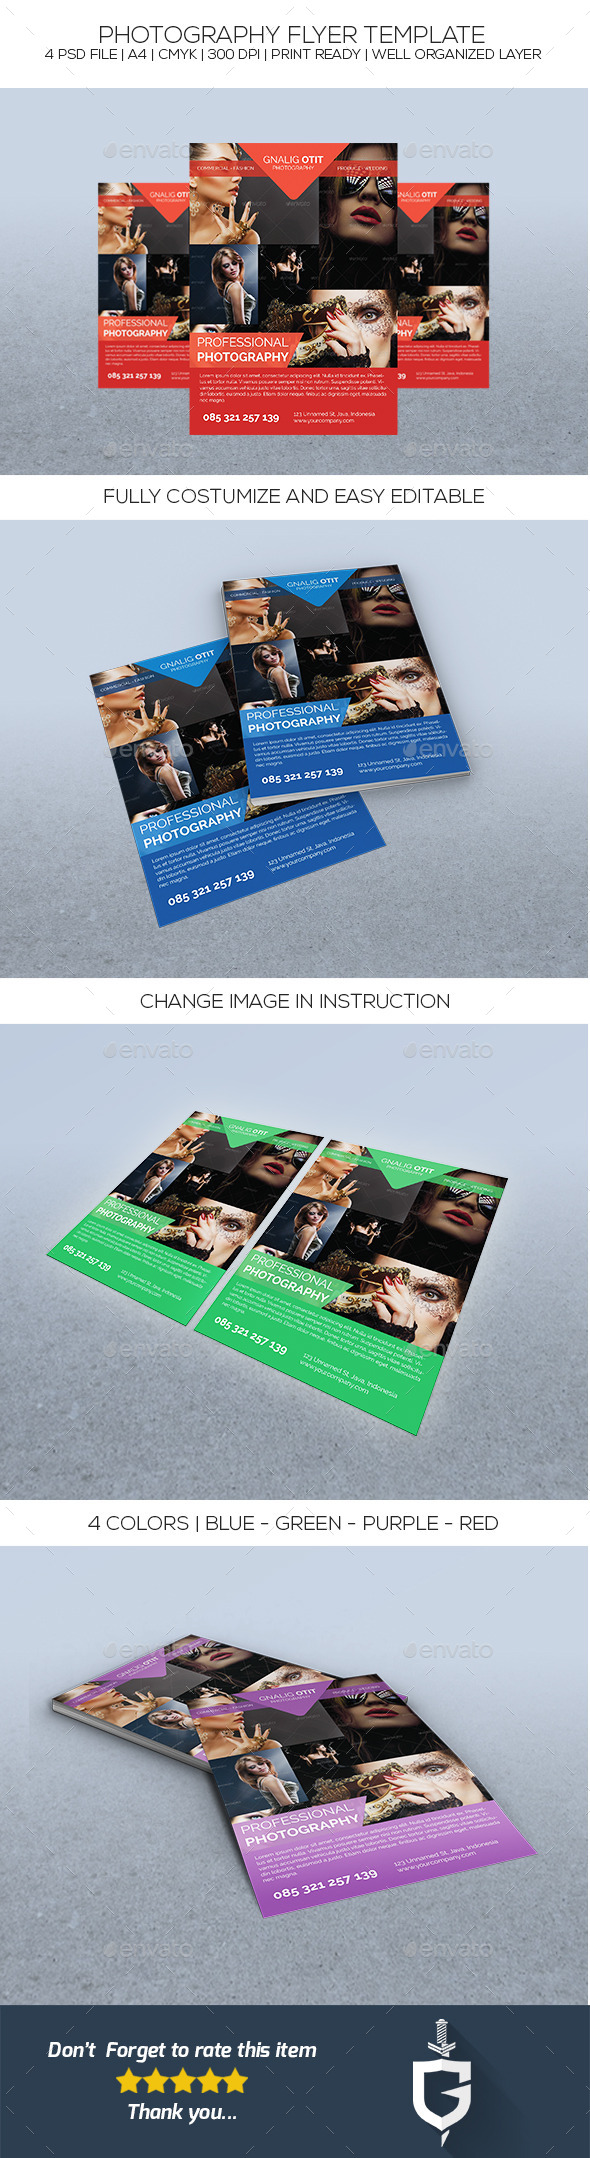 GraphicRiver Photography Flyer Template 10189600